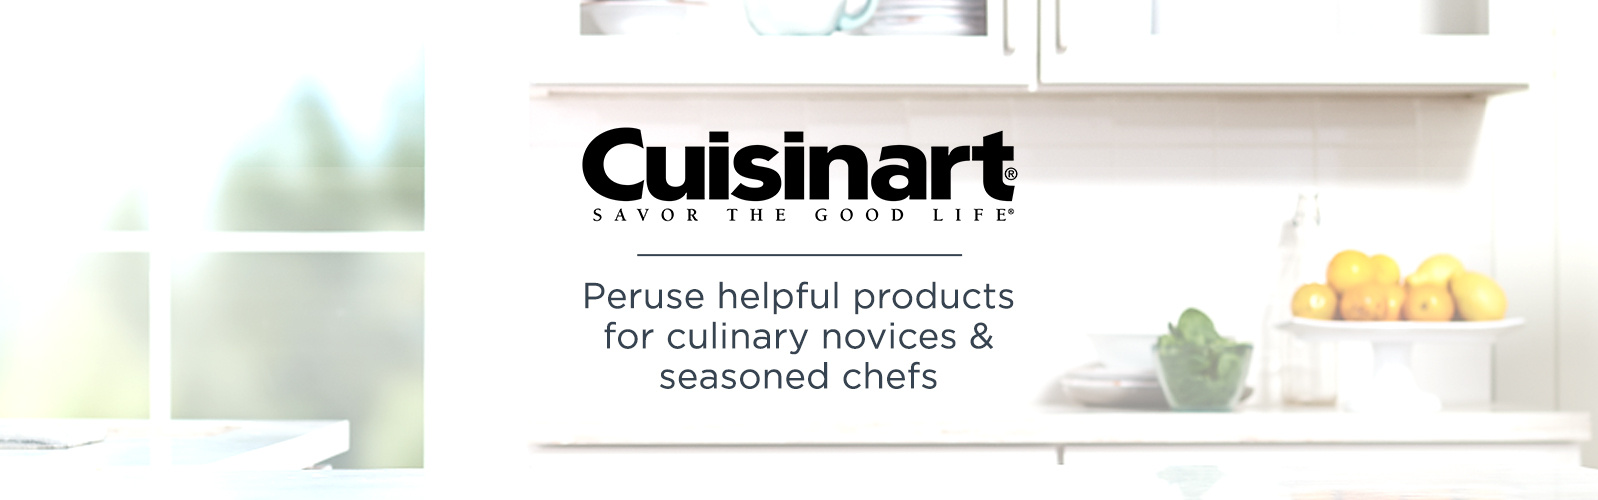 Cuisinart. Peruse helpful products for culinary novices & seasoned chefs